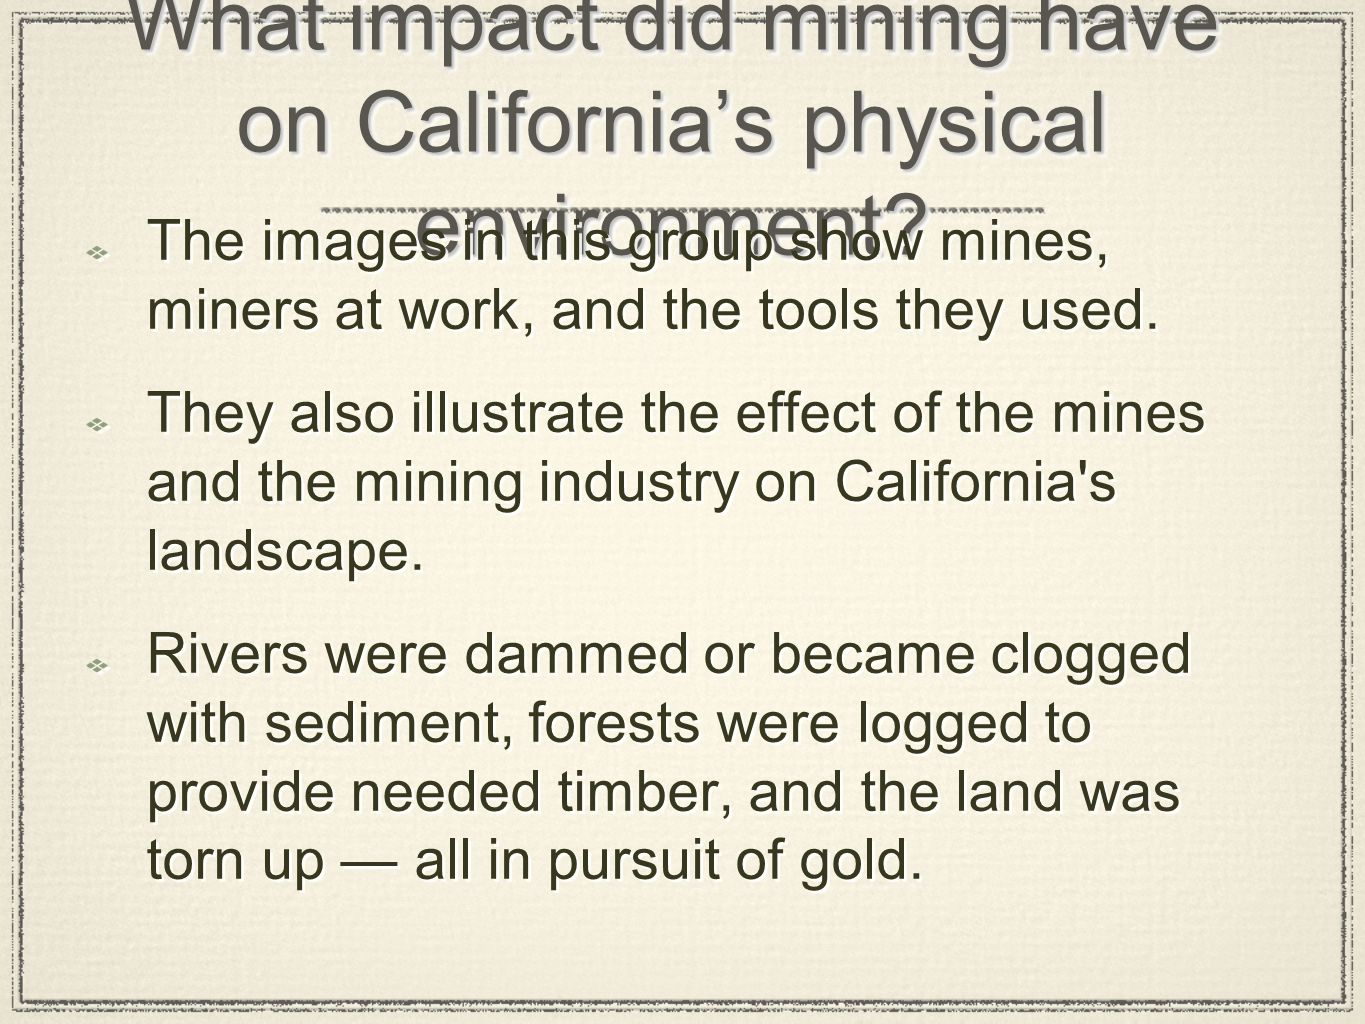 What impact did mining have on Californias physical environment? The images in this group show mines, miners at work, and the tools they used. They al